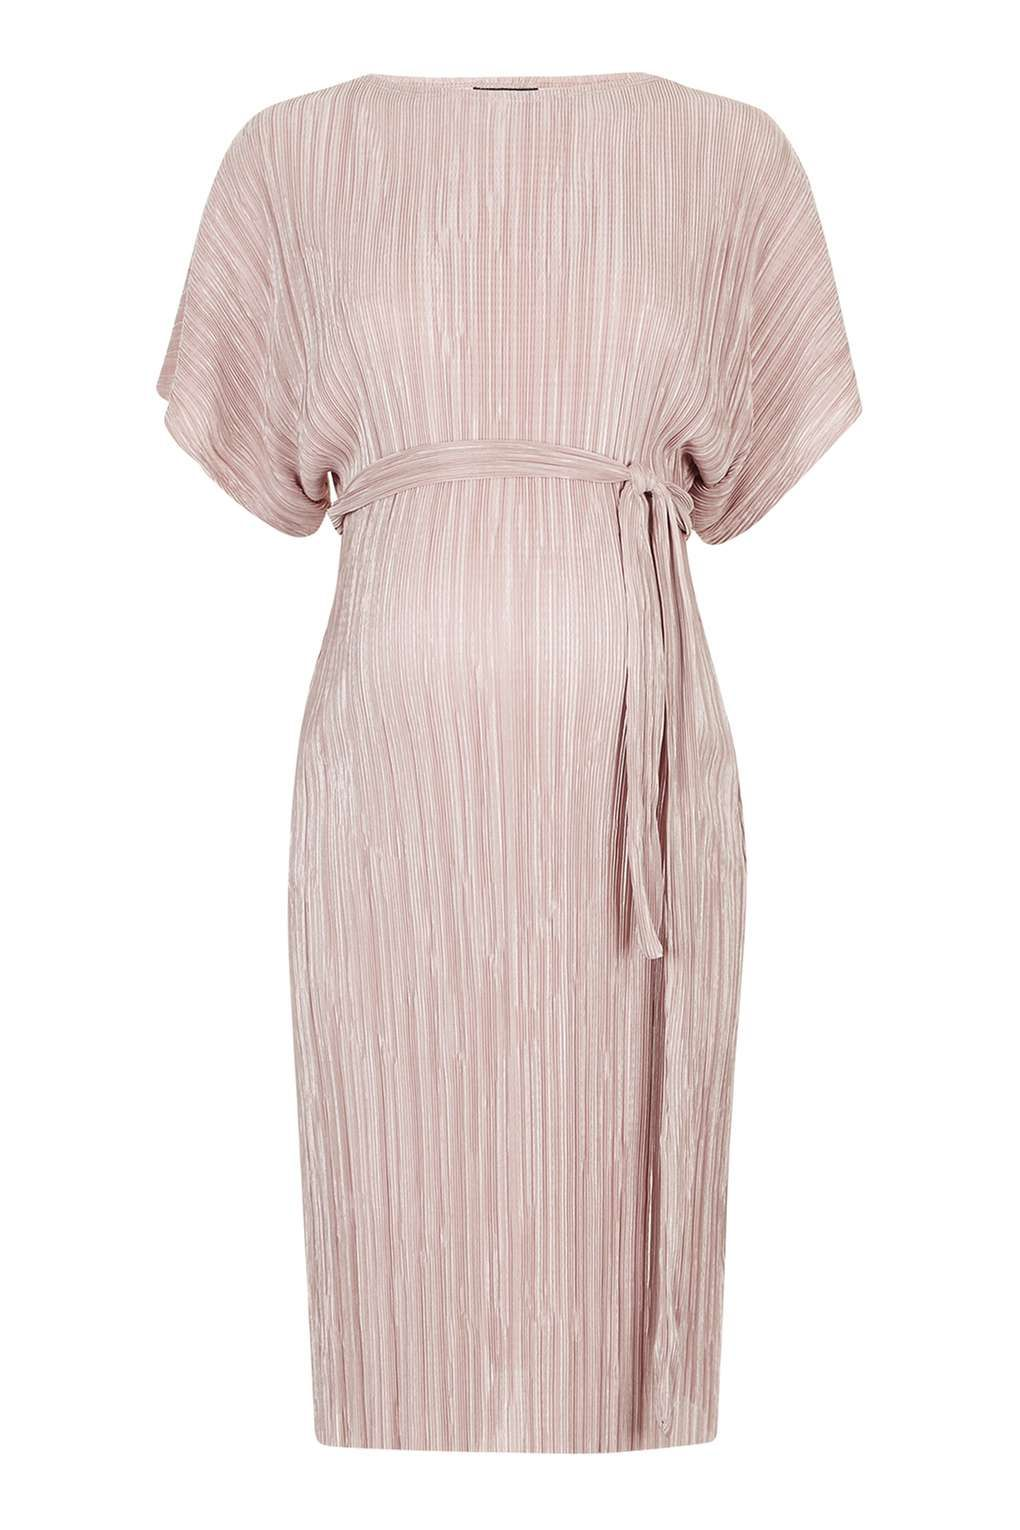 Maternity pleat batwing midi dress dresses clothing midi maternity pleat batwing midi dress dresses clothing ombrellifo Gallery